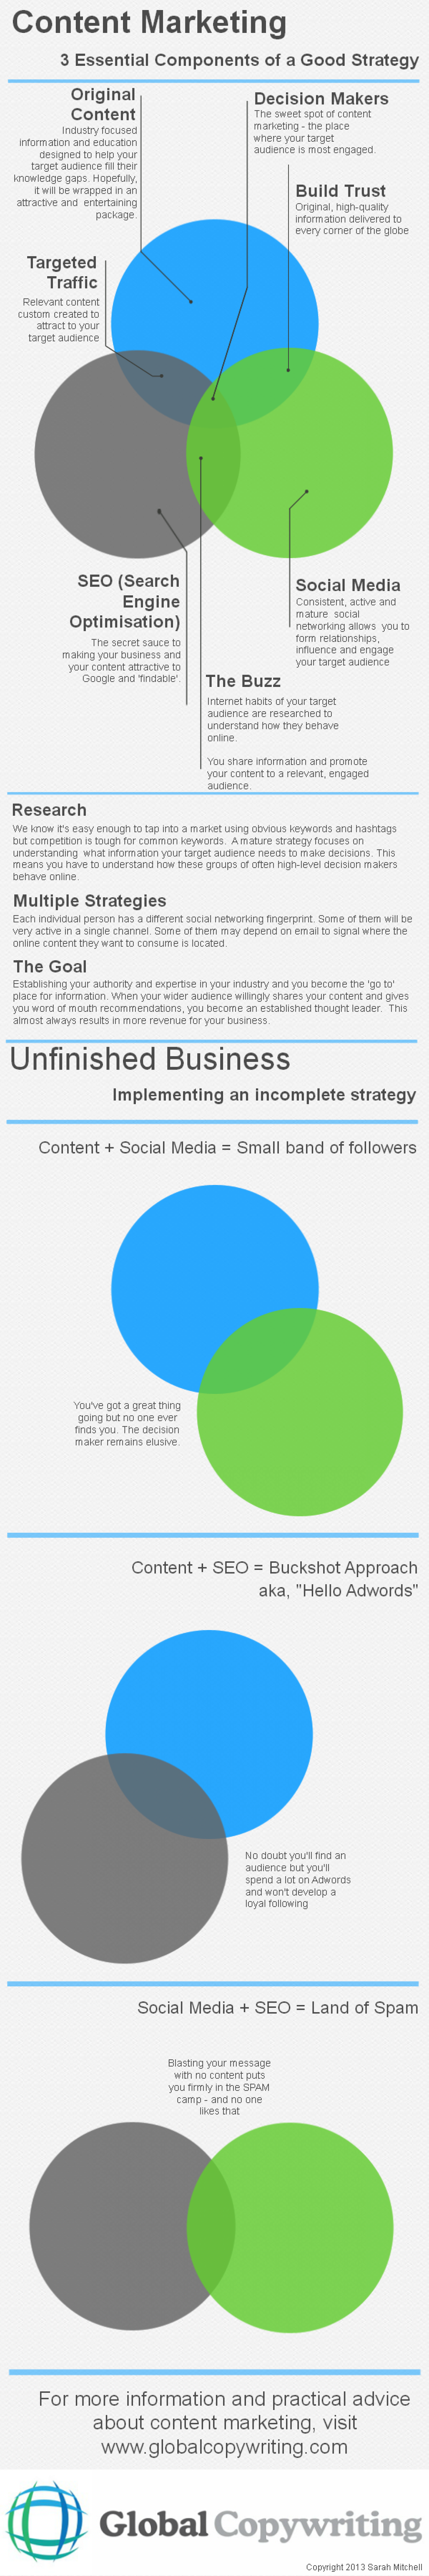 Content Marketing: 3 Essential Components of a Good Strategy Infographic